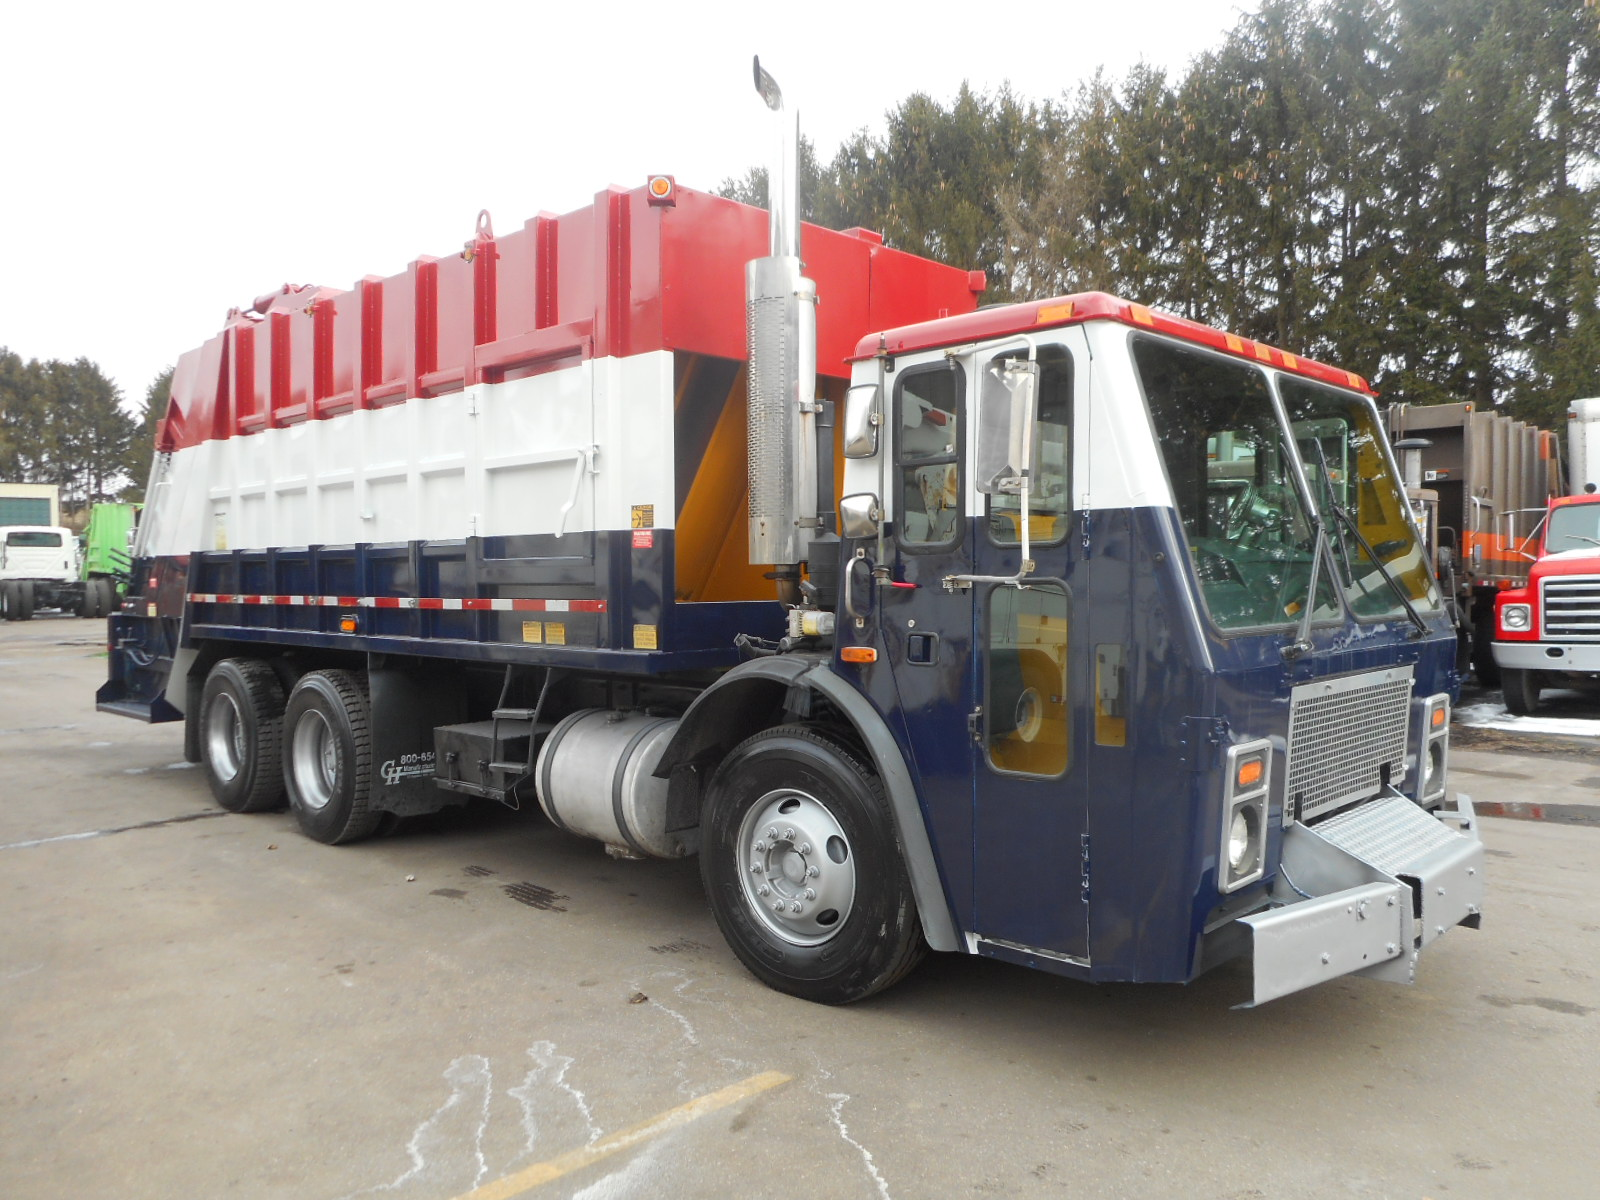 2006 Mack SOLD LE 613  SOLD for sale-59108178